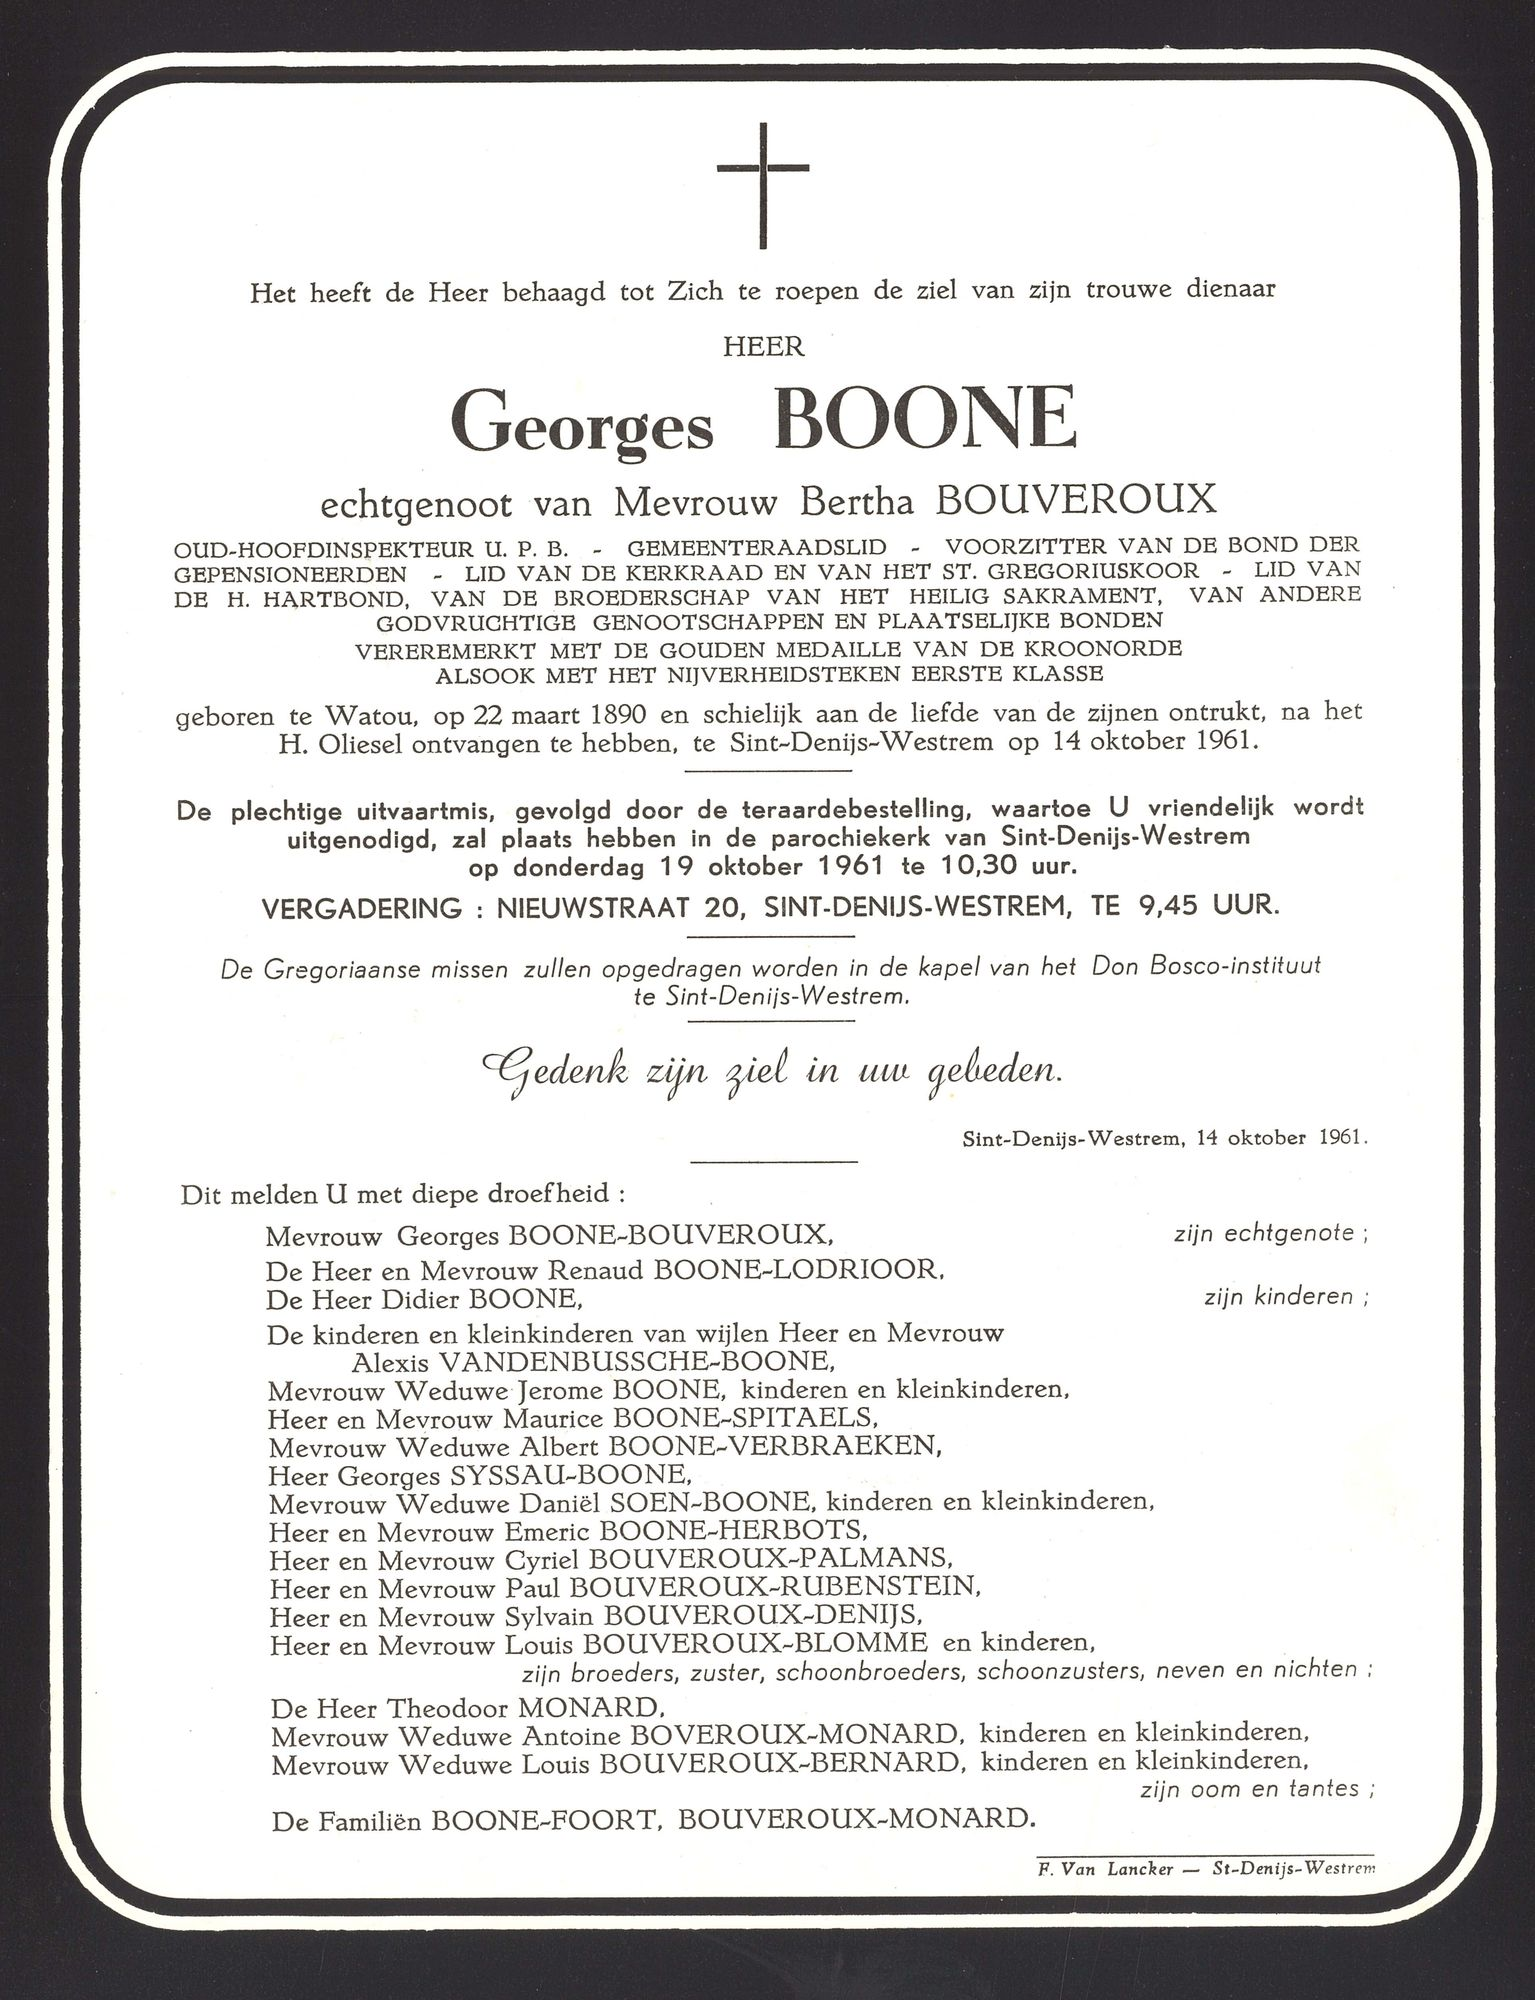 Georges Boone